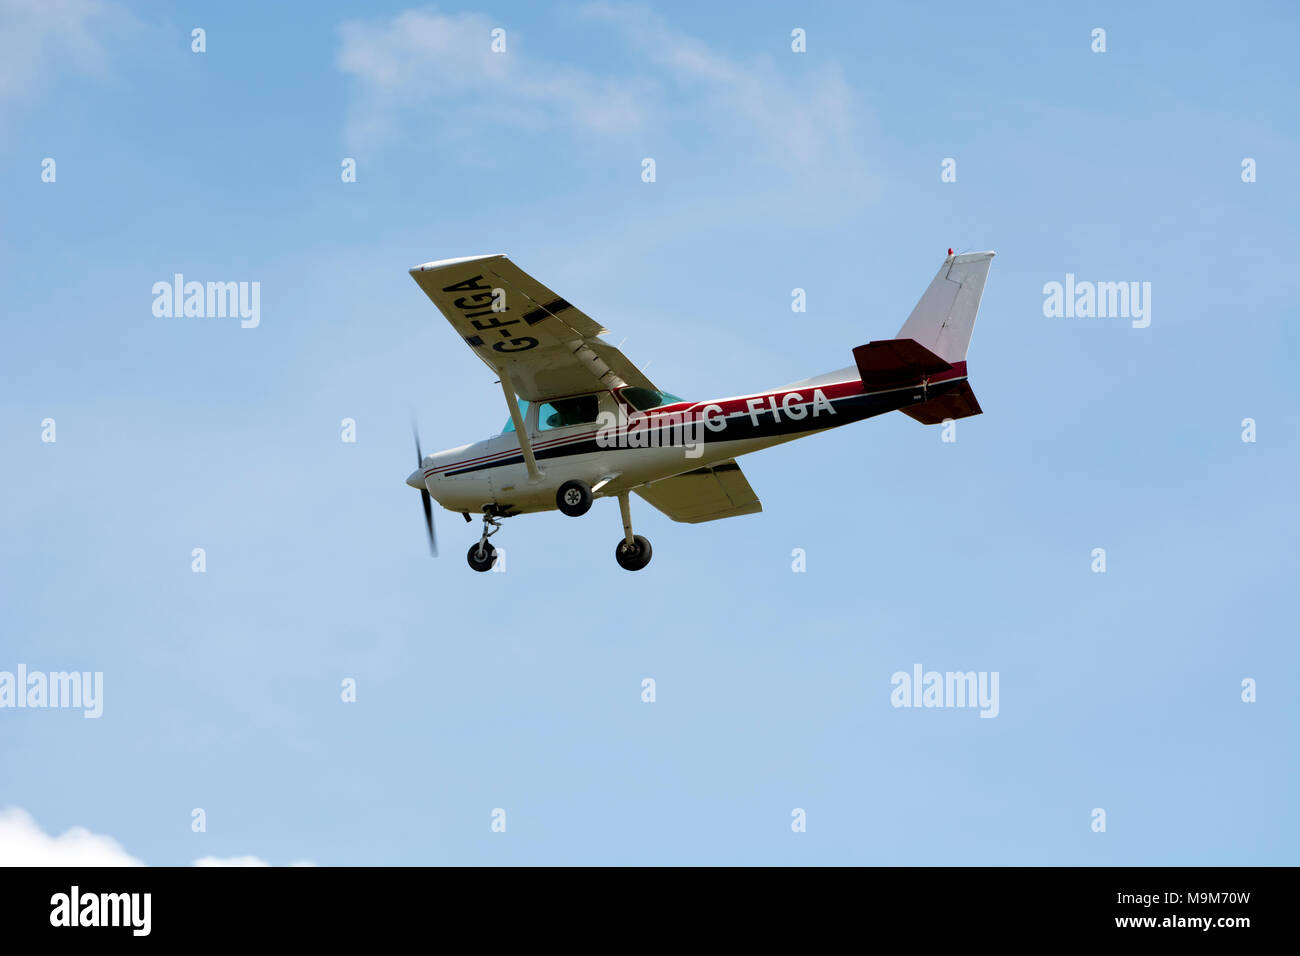 Cessna 152 at Wellesbourne Airfield, Warwickshire, UK (G-FIGA) - Stock Image